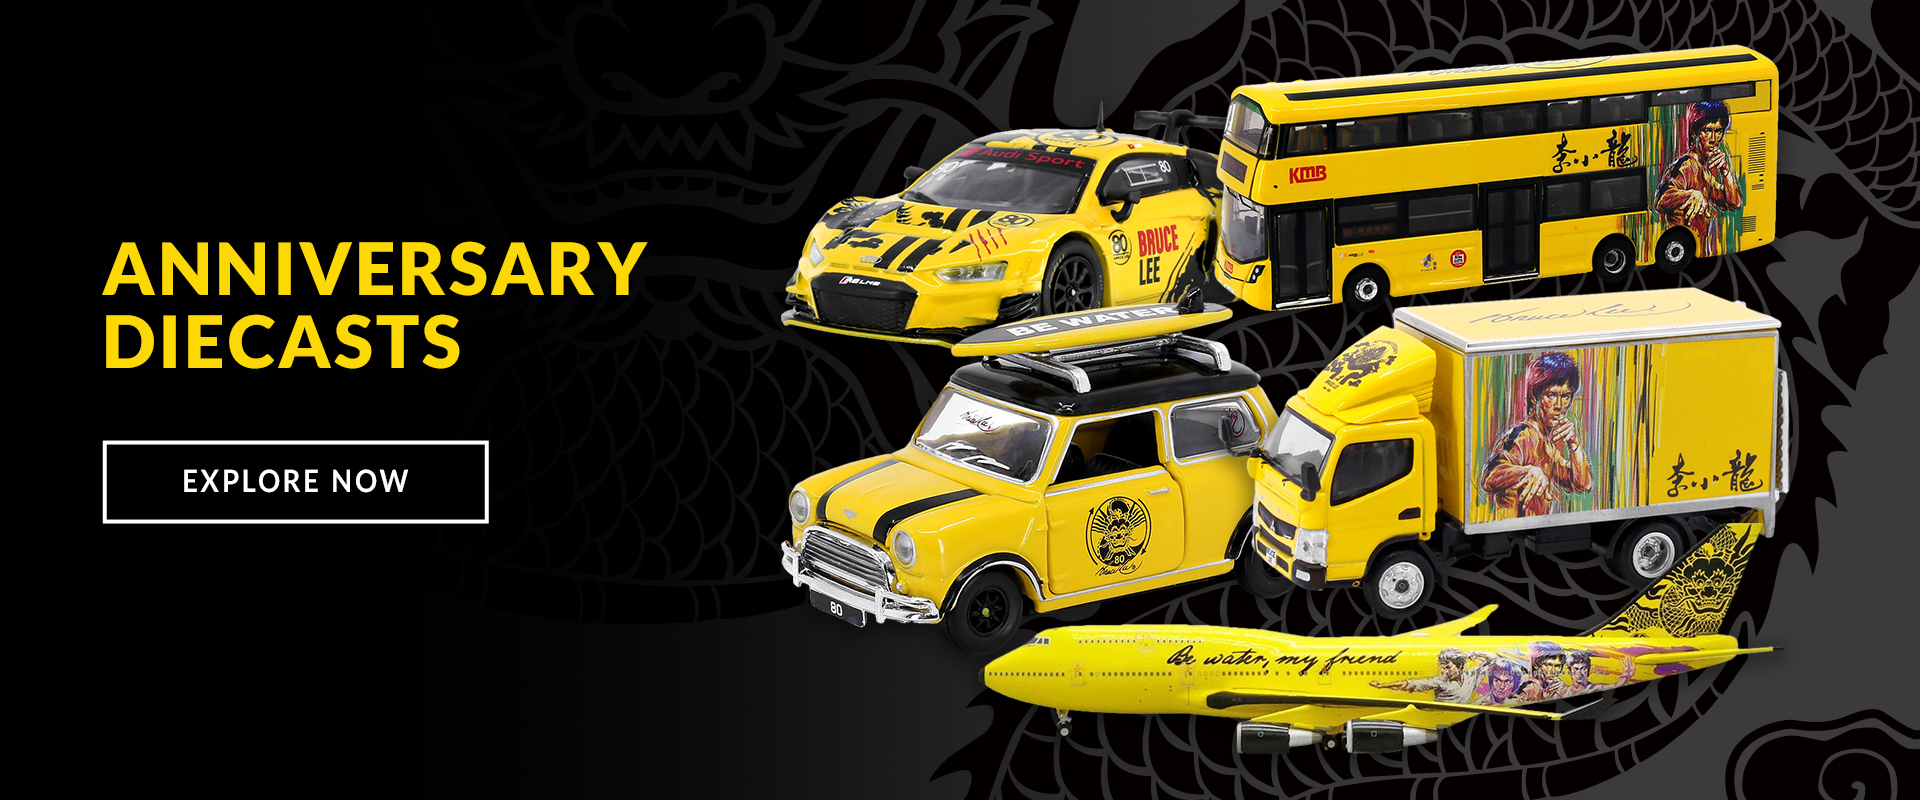 Bruce Lee 80th Anniversary Diecasts